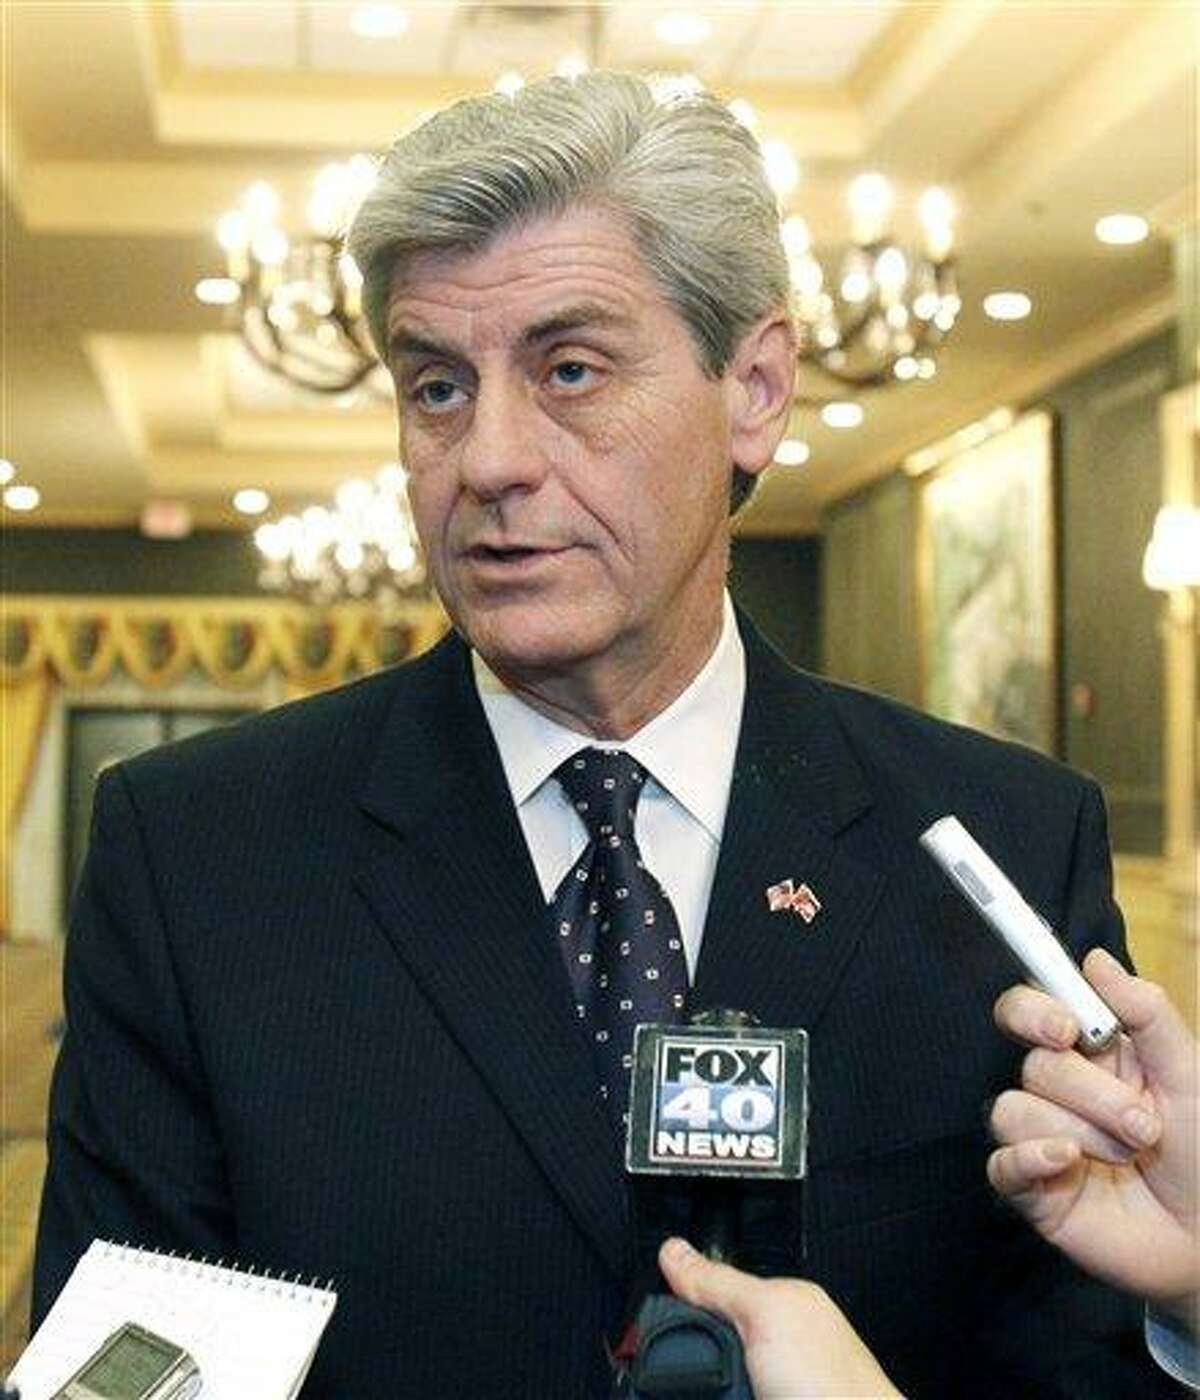 Mississippi Gov. Phil Bryant tells reporters he favors says some sort of limits on gubernatorial pardon powers as he walks to address members of the Mississippi Hospital Association Tuesday. Many in Mississippi favor a constitutional amendment that would allow a governor to single-handedly grant pardons only in cases in which there's clear evidence of innocence. Associated Press